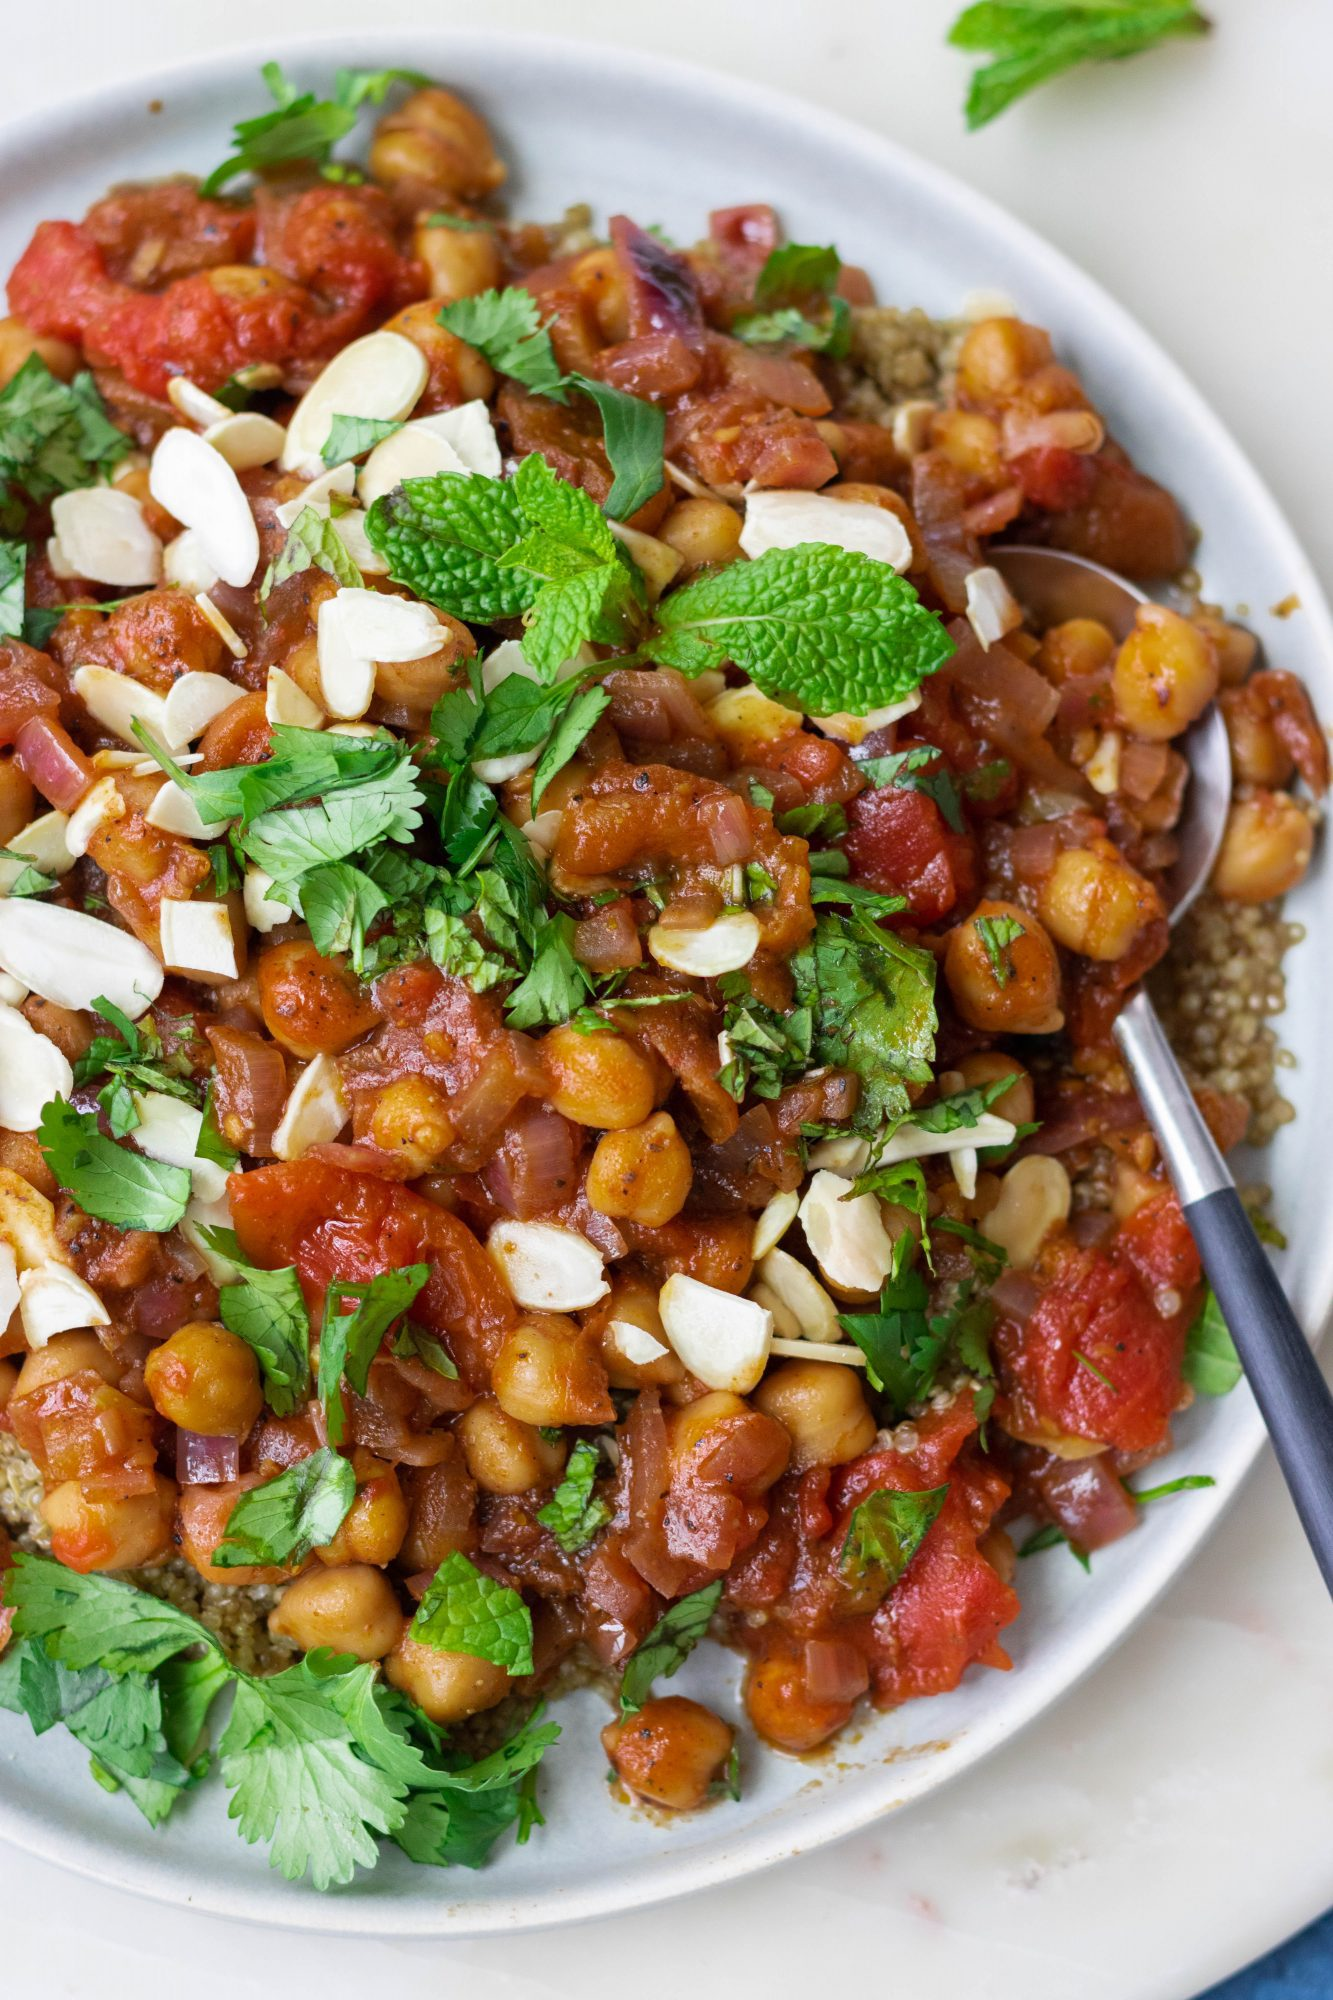 Easy Moroccan Spiced Chickpeas